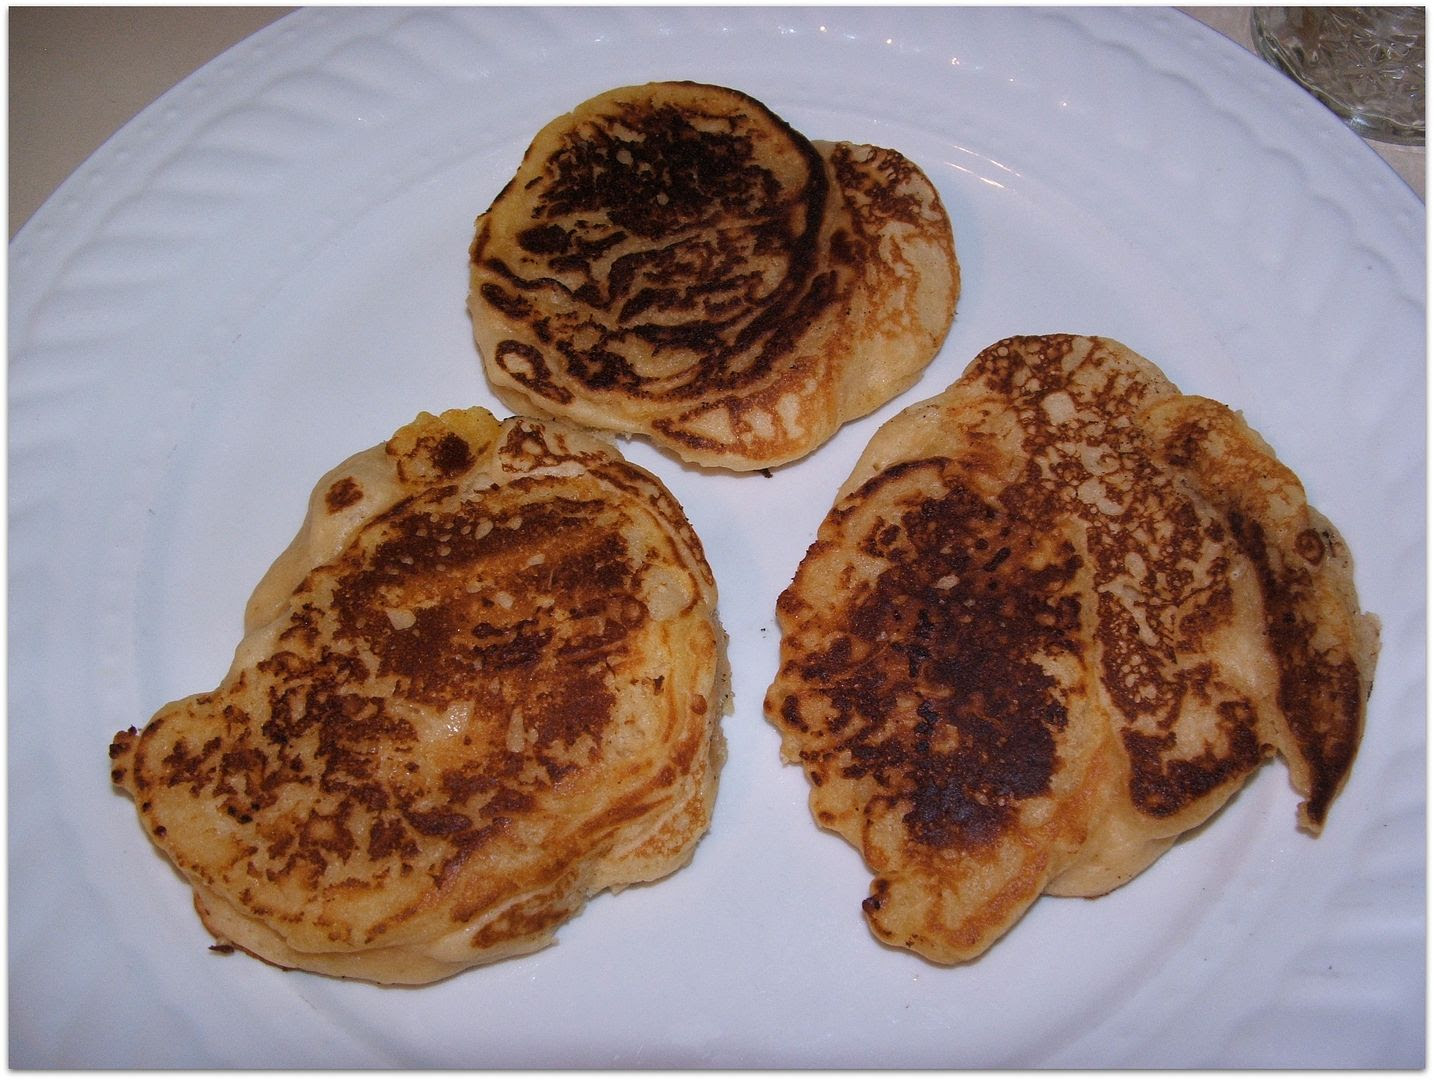 Peanut Butter Pancakes with Grape Syrup by Angie Ouellette-Tower photo 008_zps5f911230.jpg